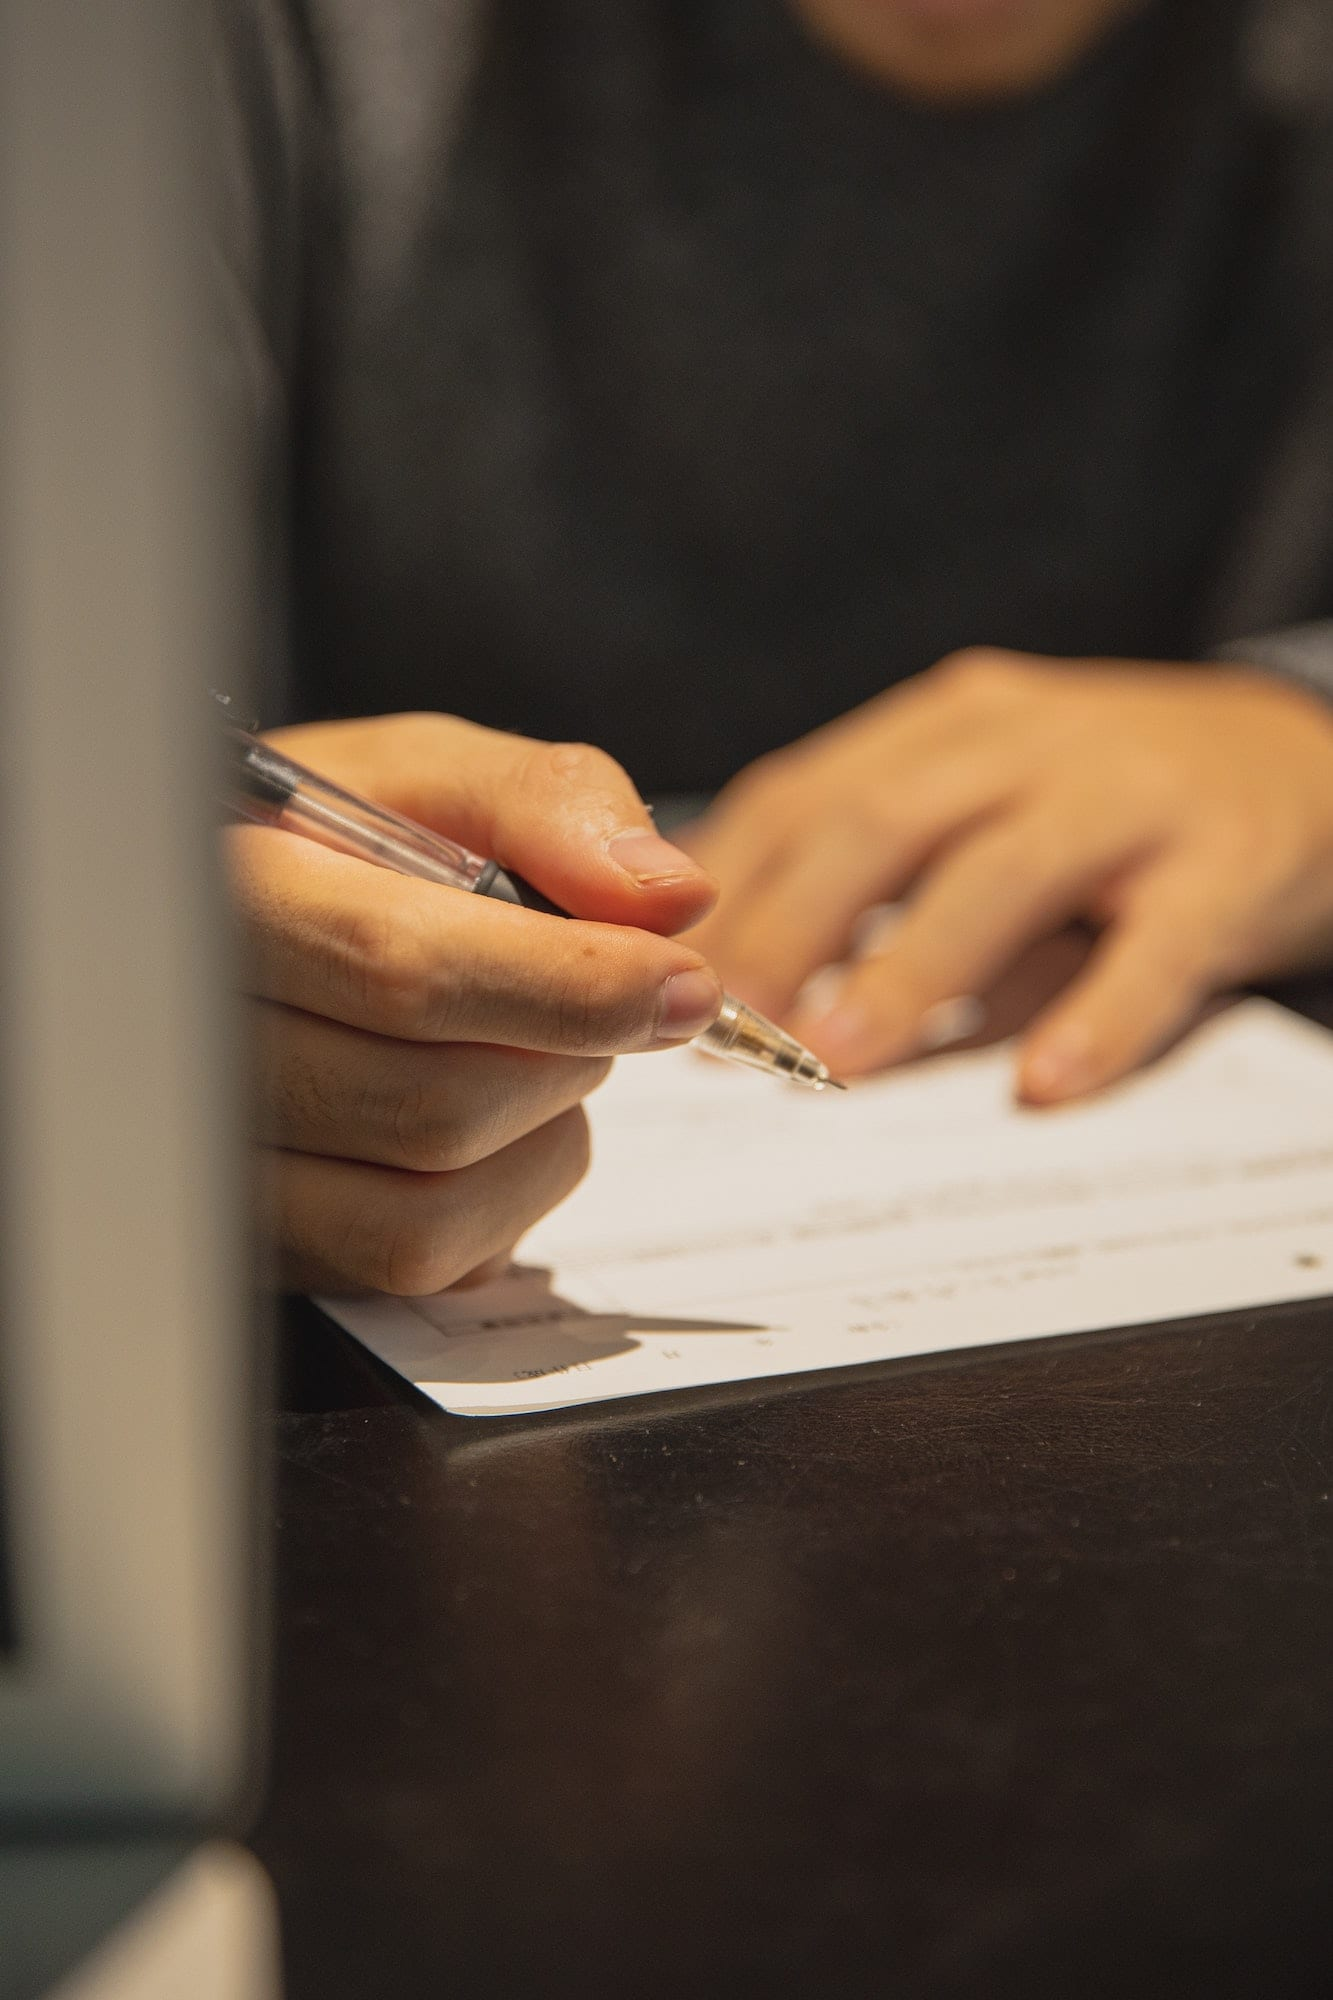 Photo of a person writing on a piece of paper